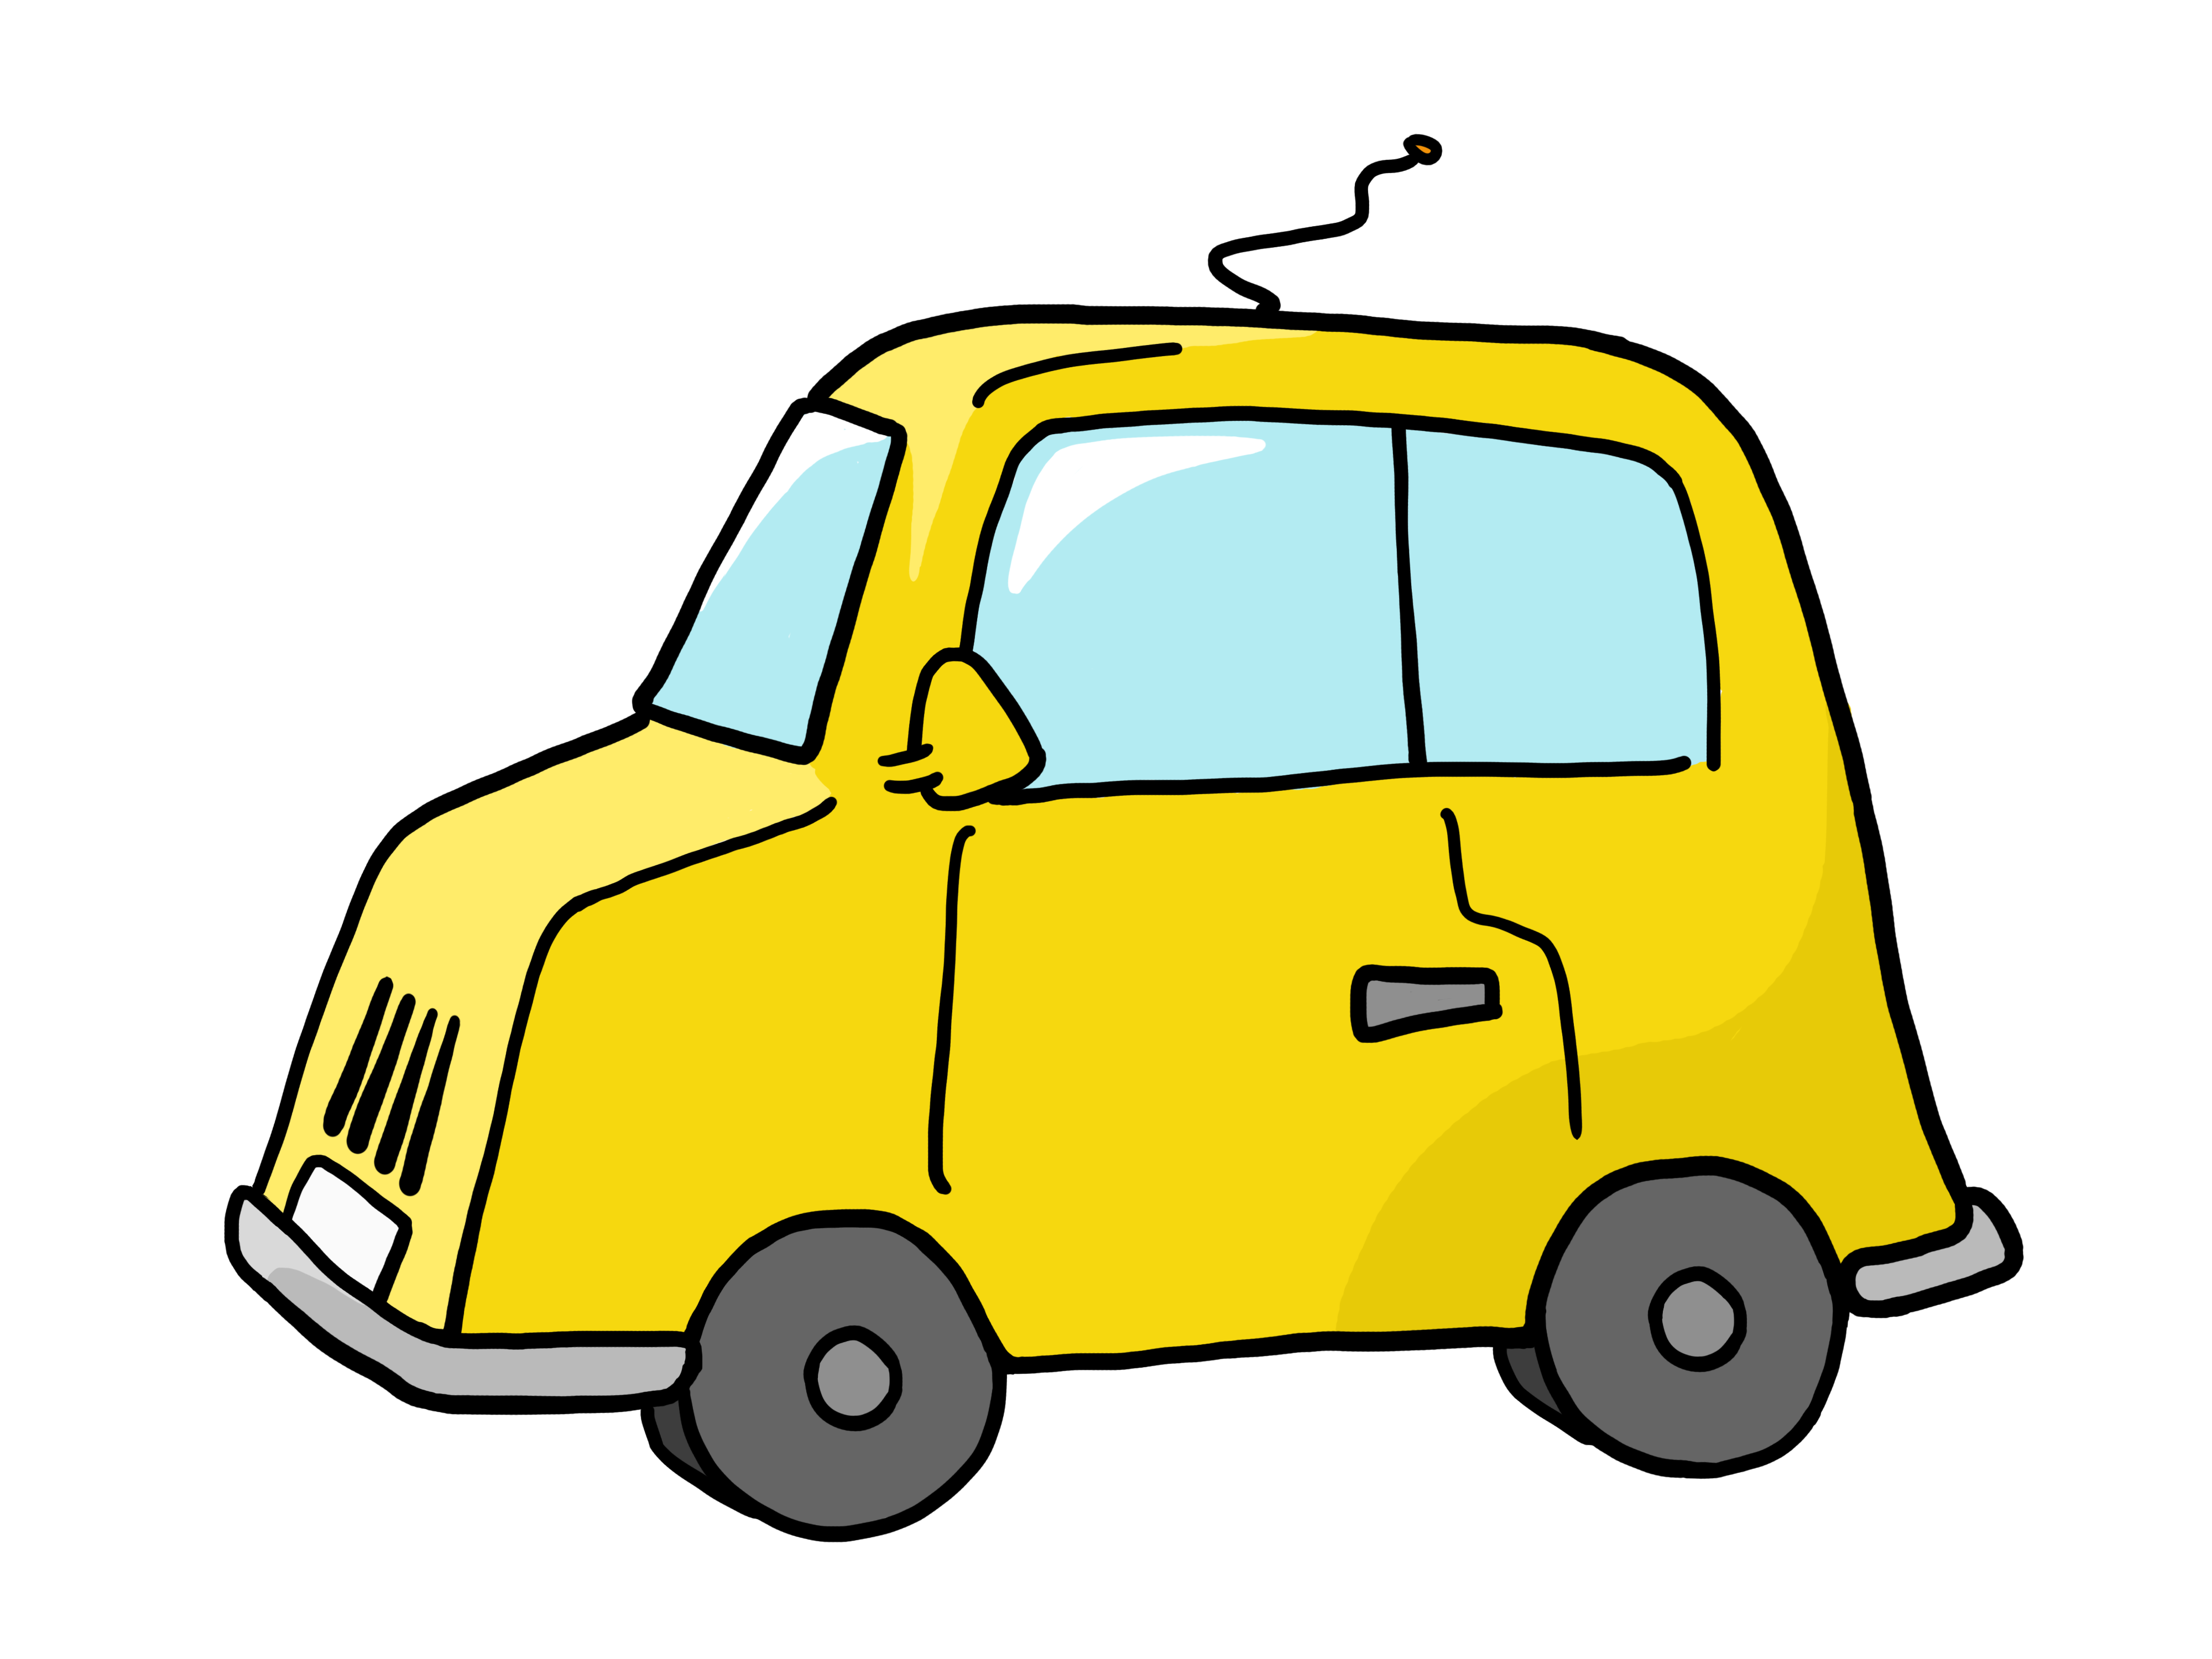 Yellow car clipart free clip art royalty free Yellow Car Clipart | Free download best Yellow Car Clipart ... clip art royalty free